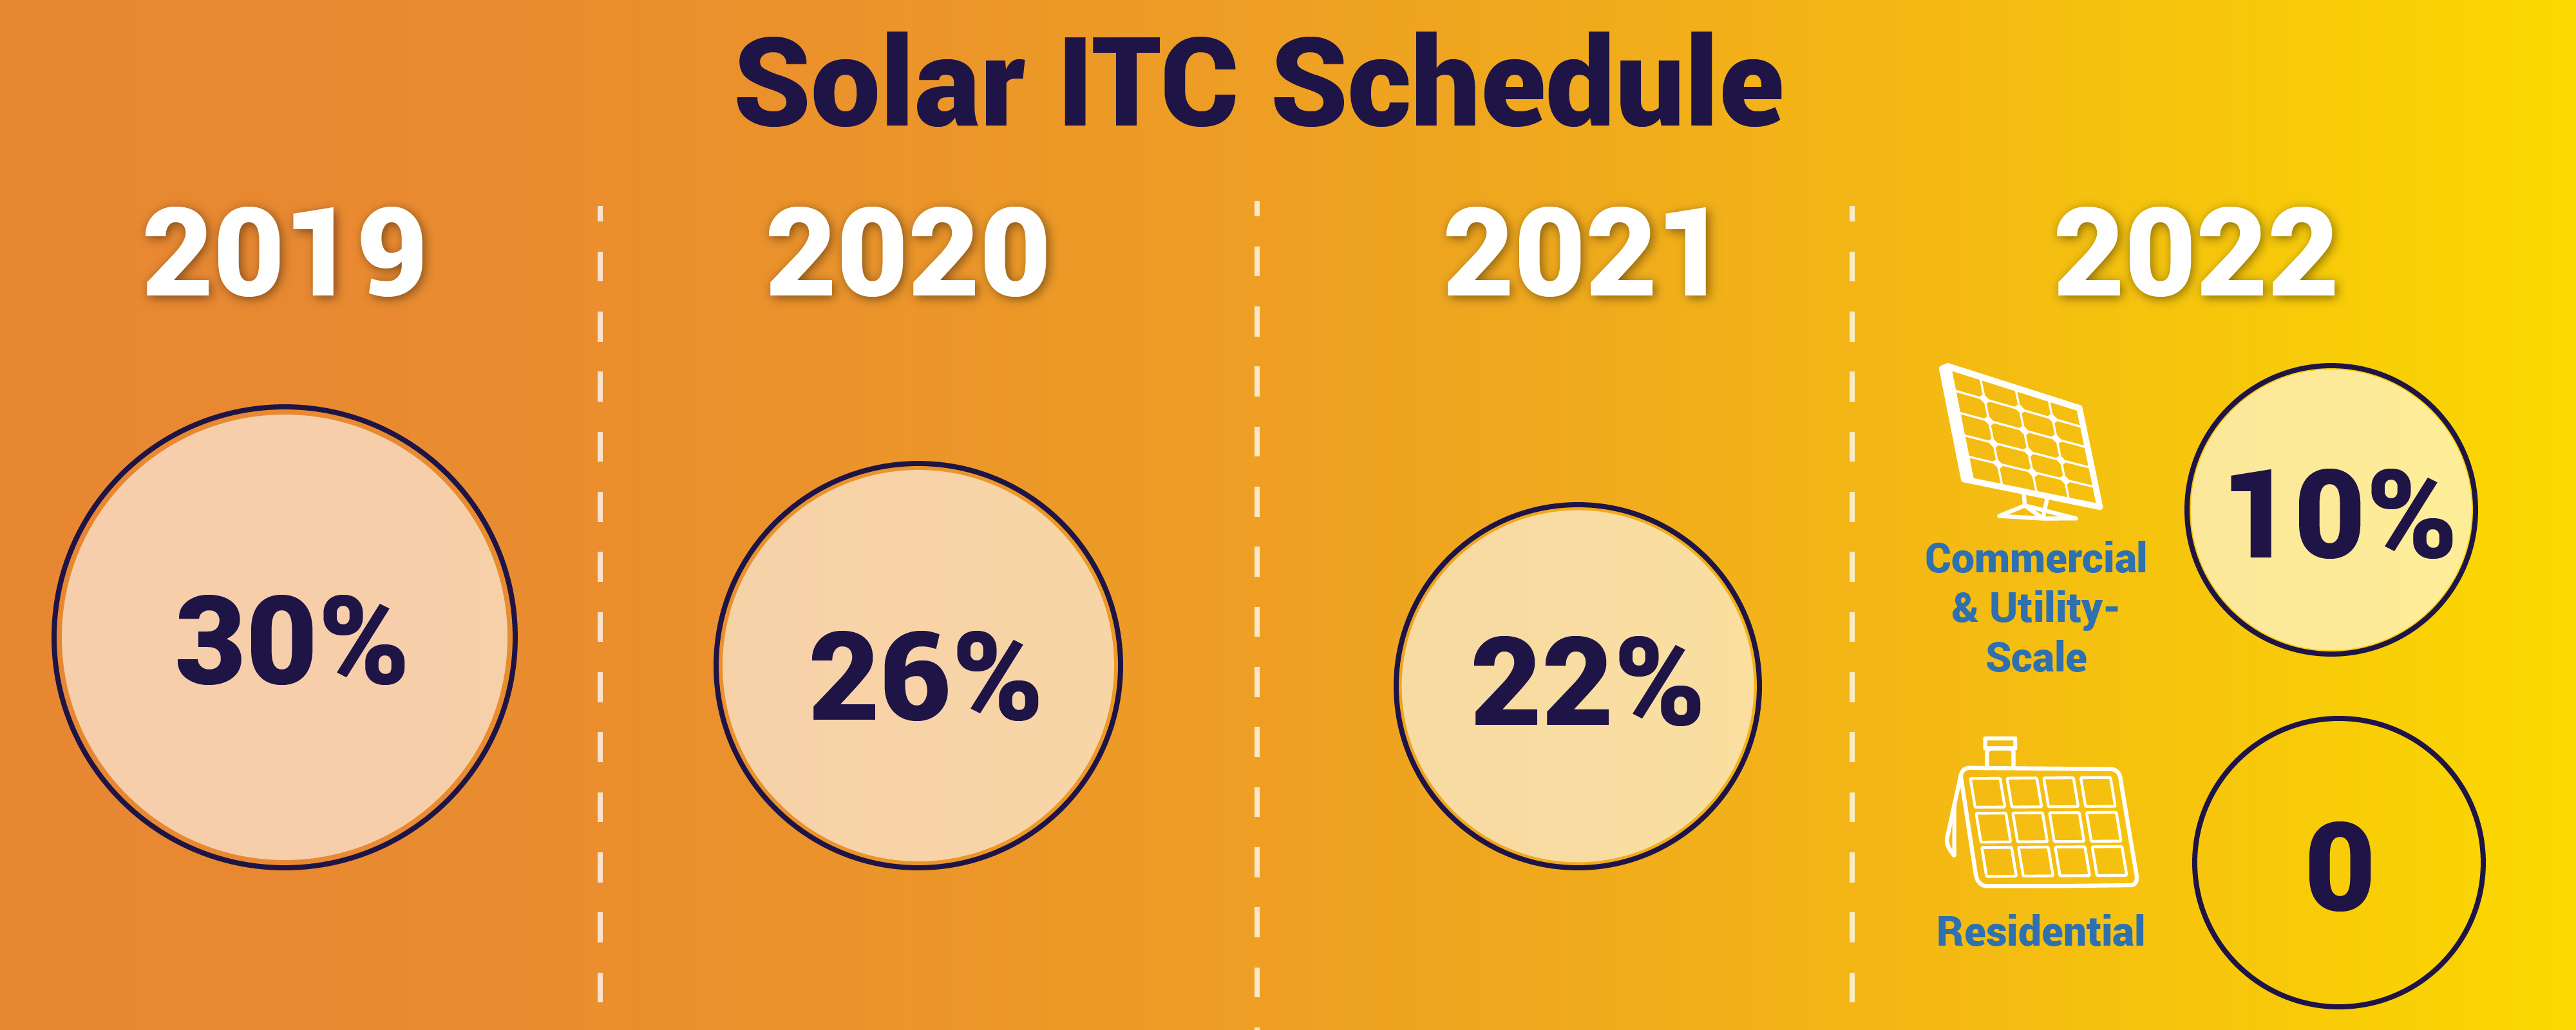 Solar ITC Schedule from 2019-2022 for solar tax credit step down